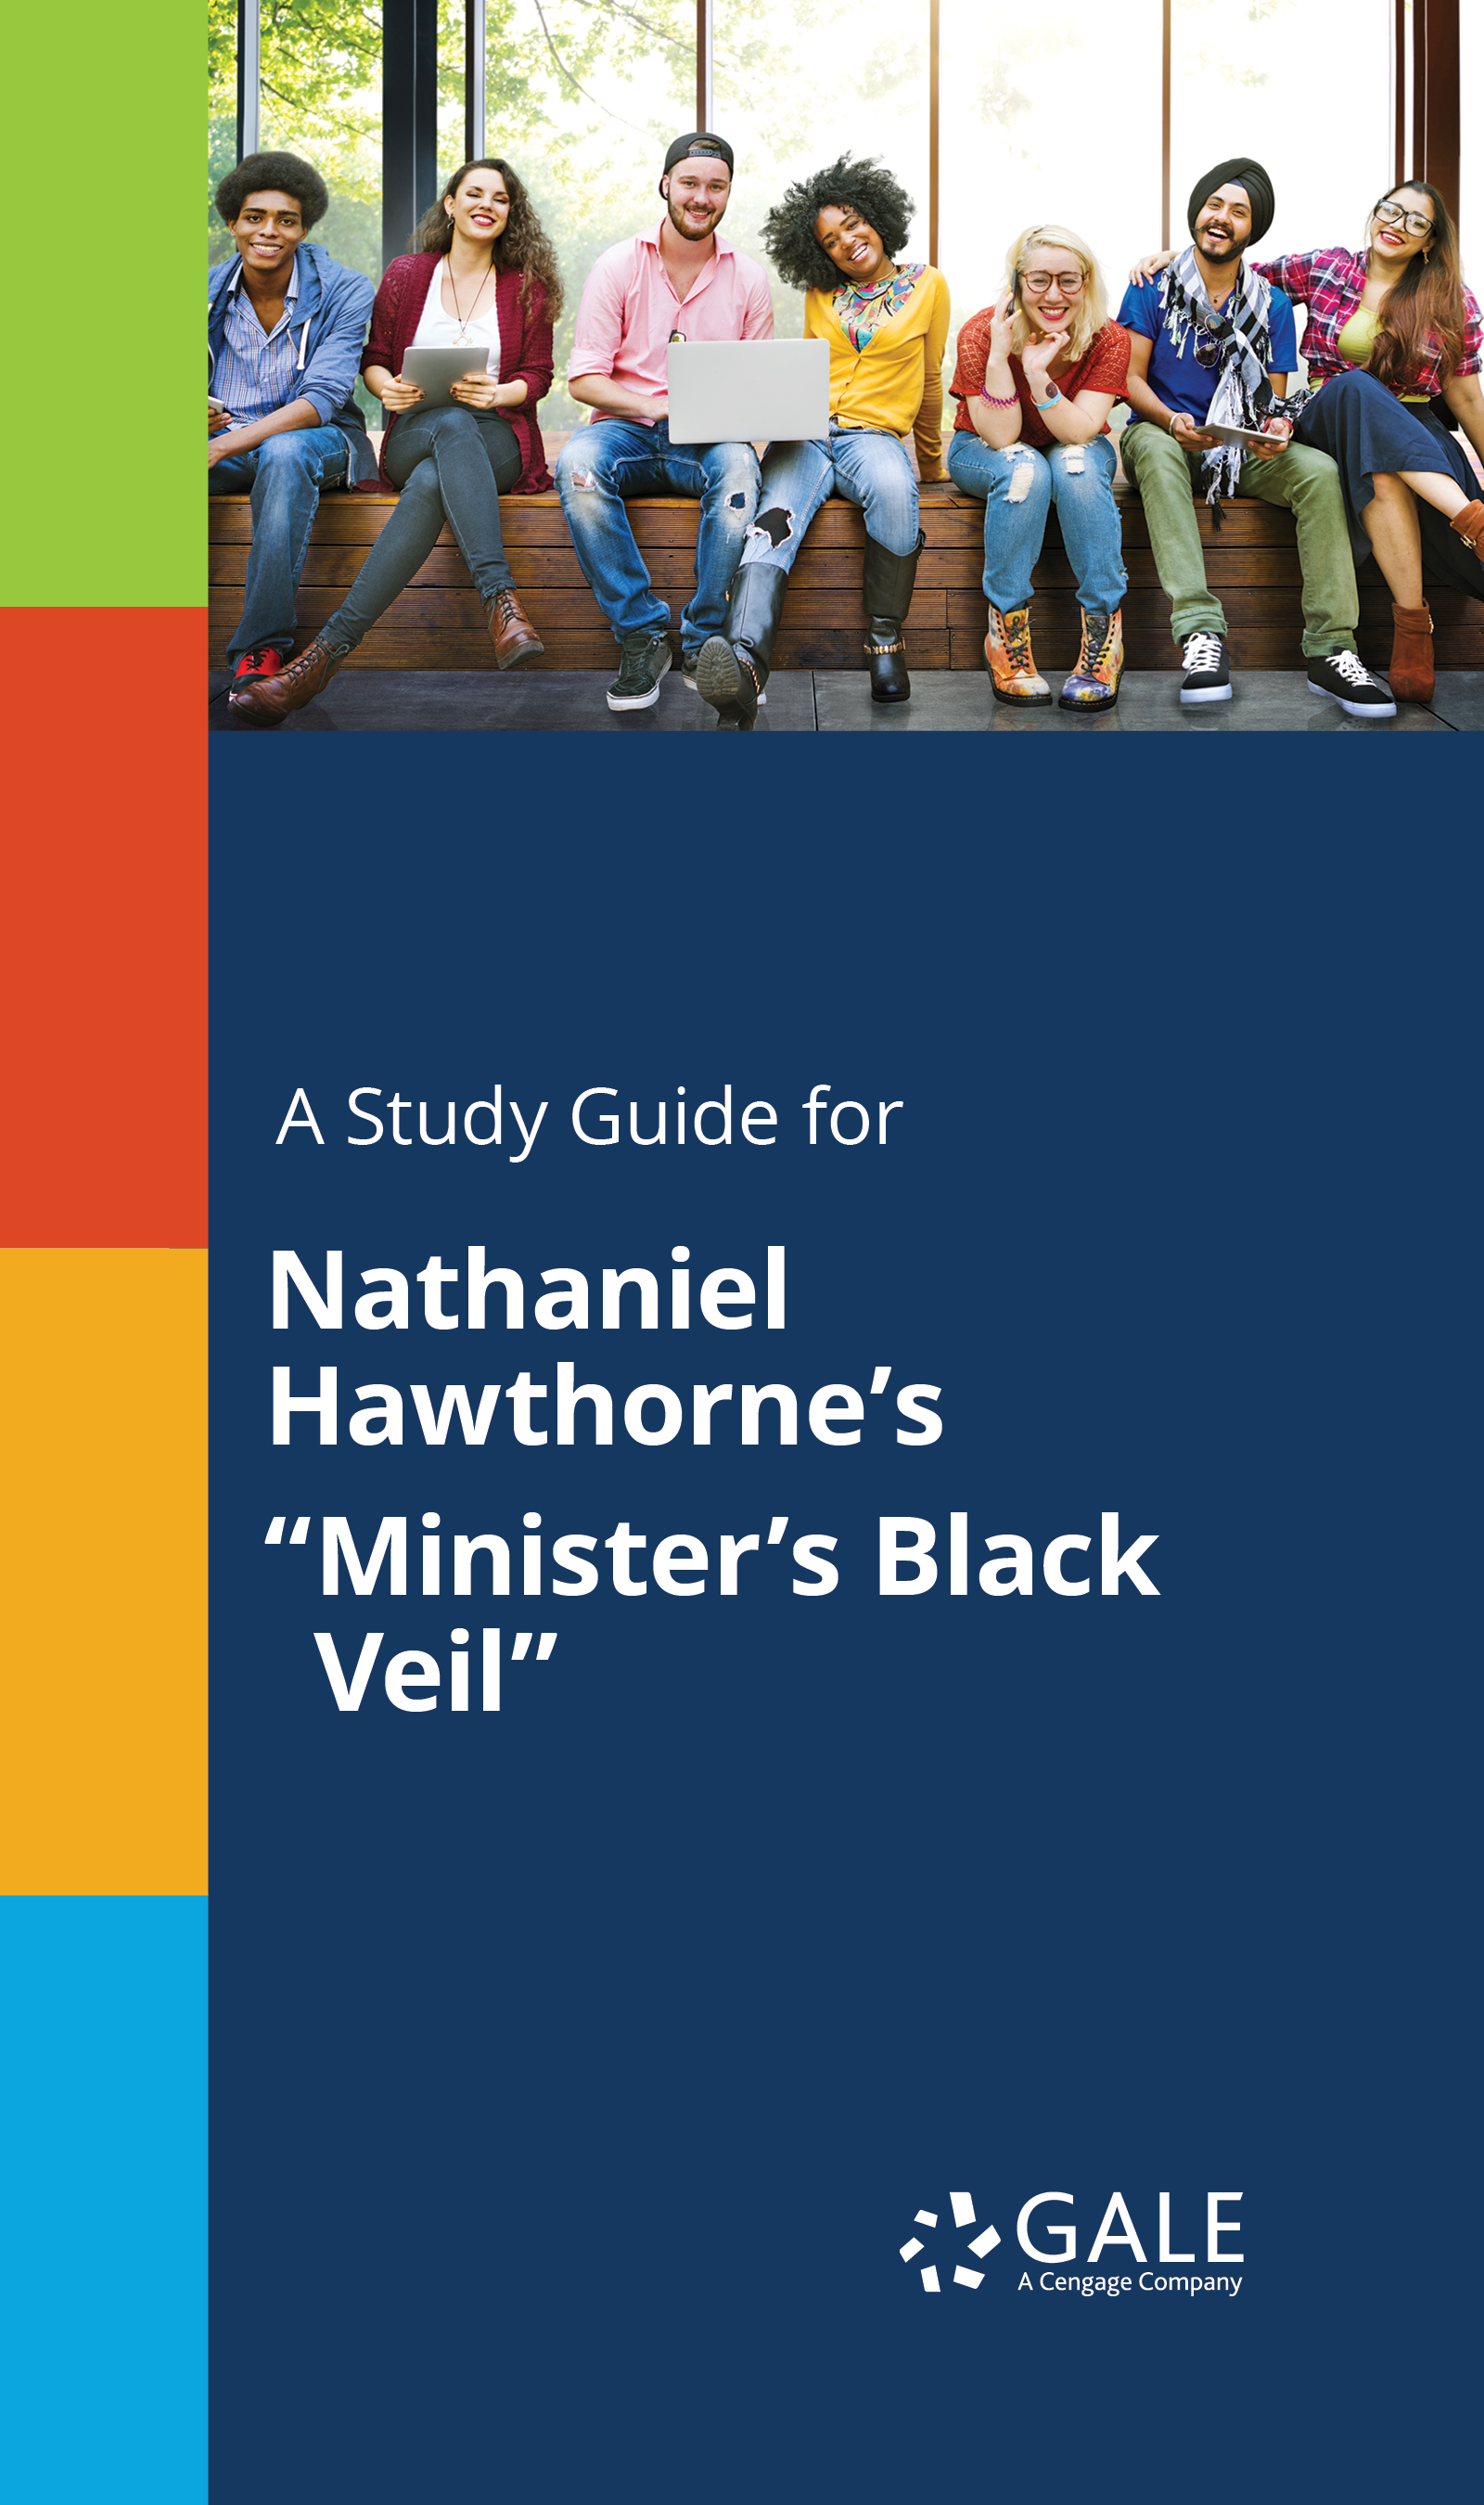 "A Study Guide for Nathaniel Hawthorne's ""Minister's Black Veil"